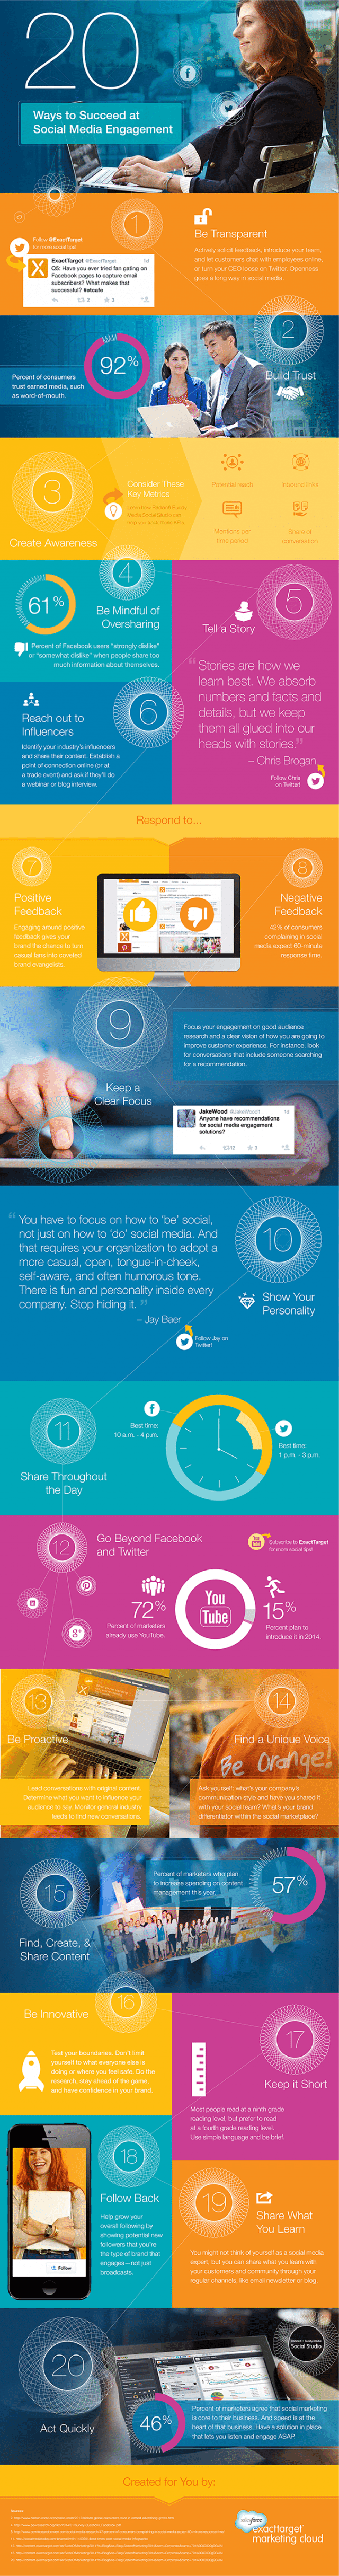 20 tips on how to boost social media engagement infographic